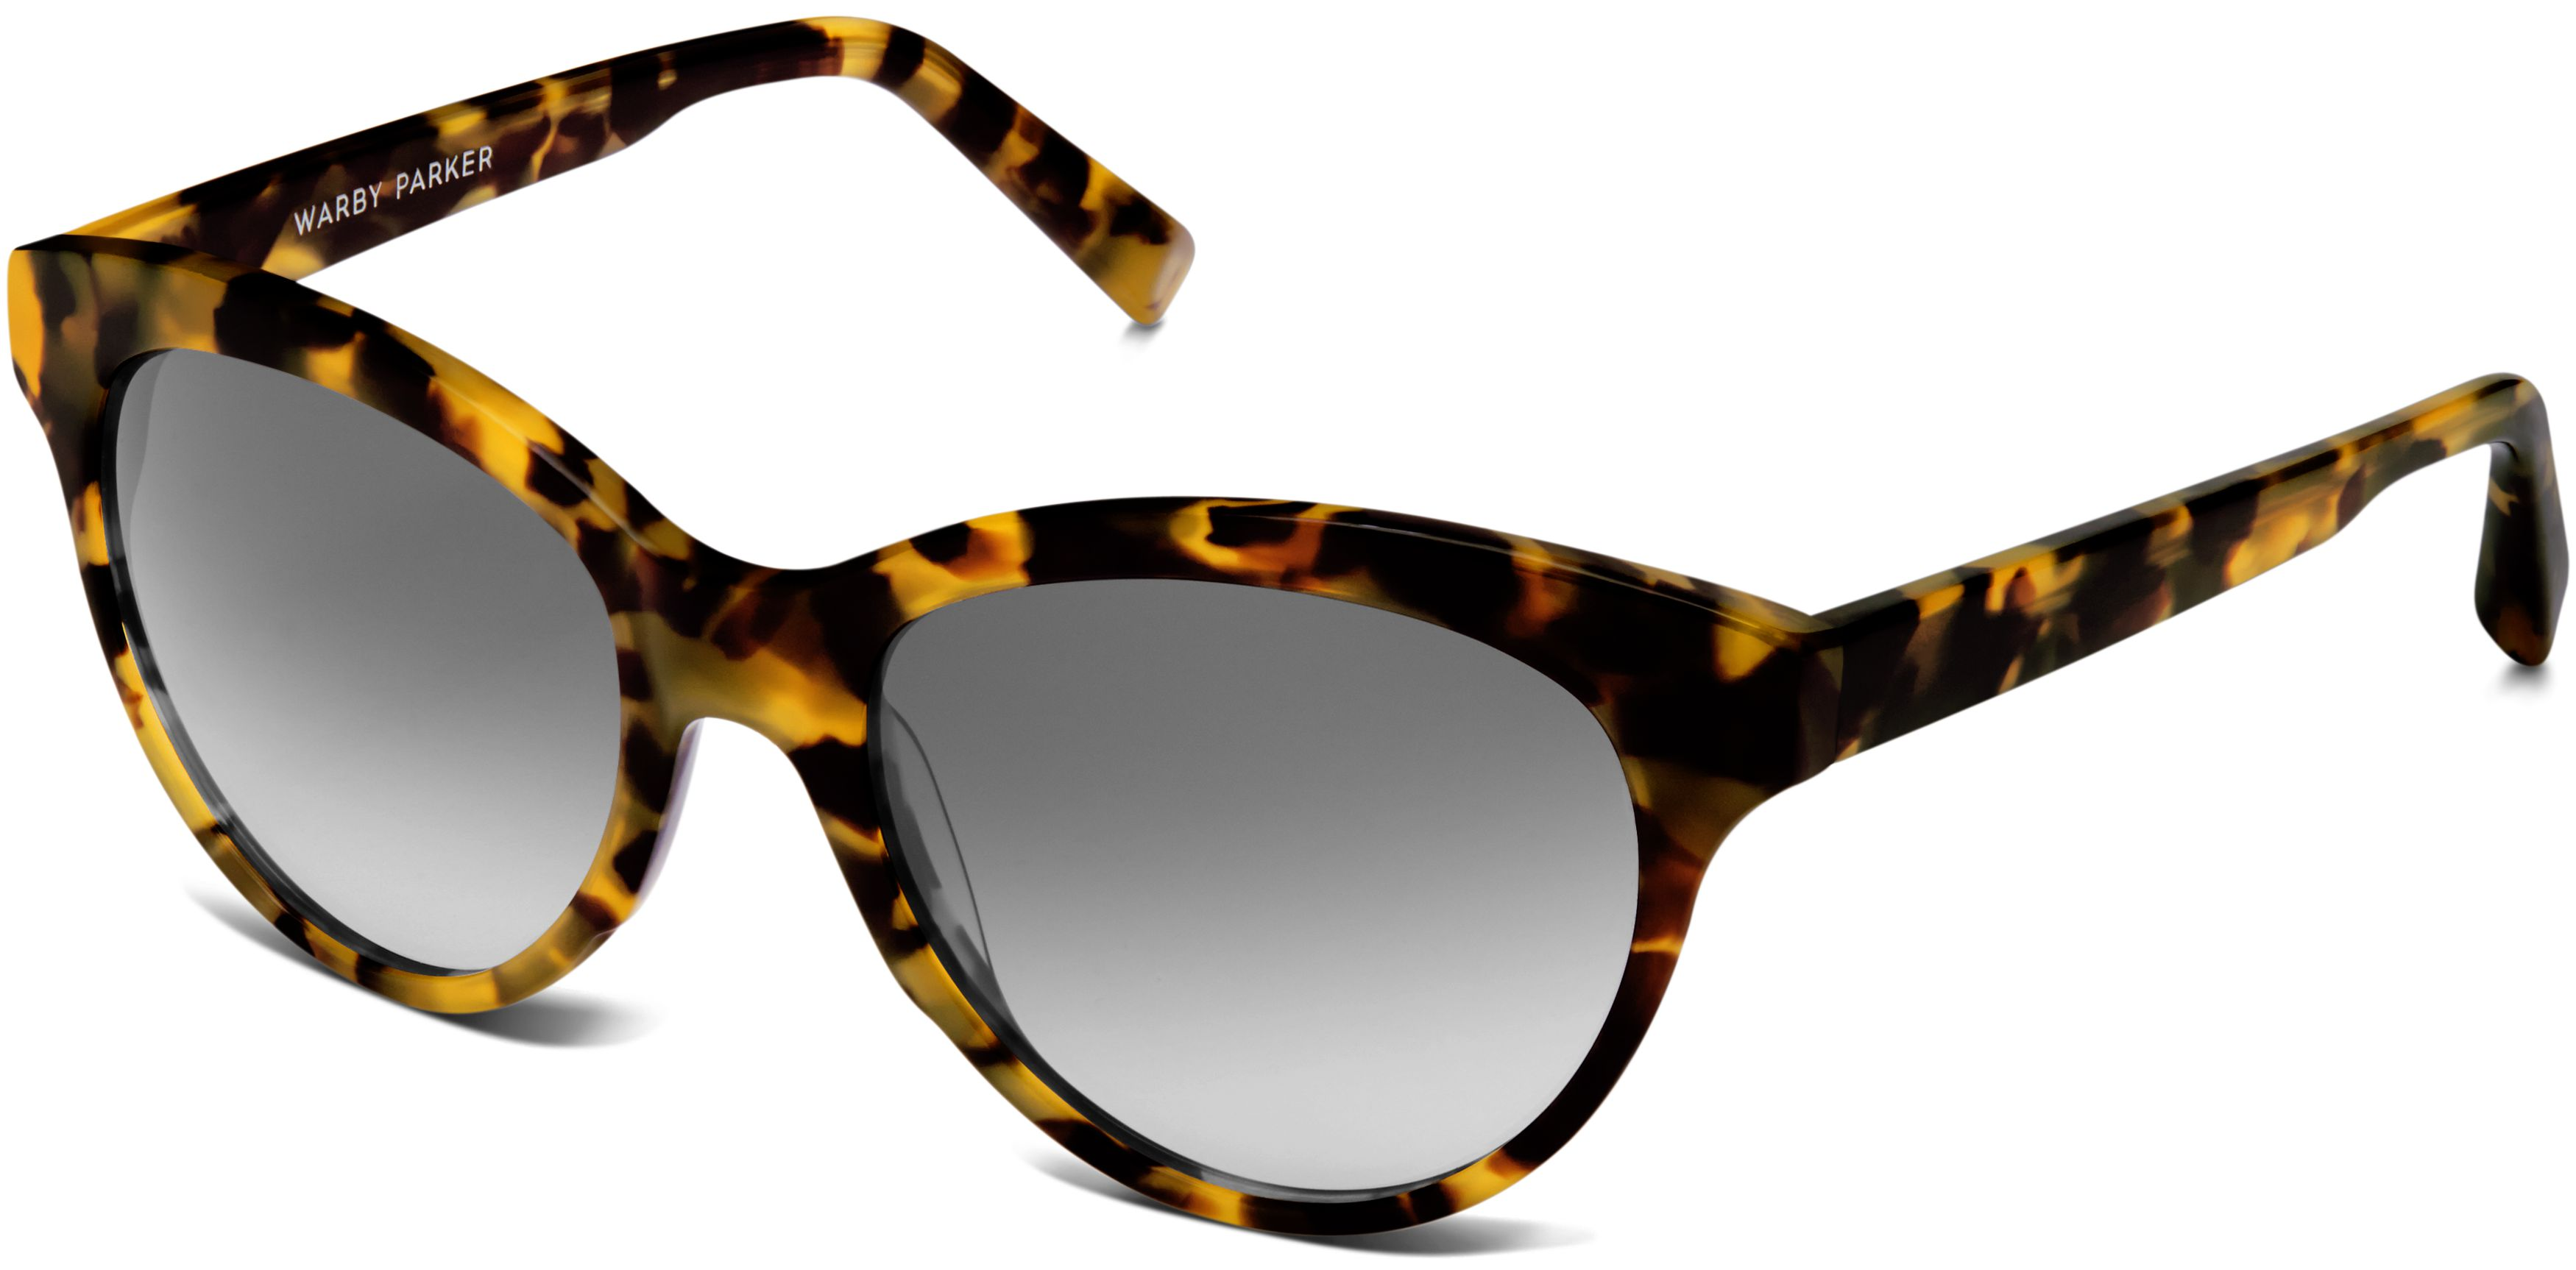 174bdf3fbc Piper Sunglasses in Woodland Tortoise with Grey Gradient lenses for Women